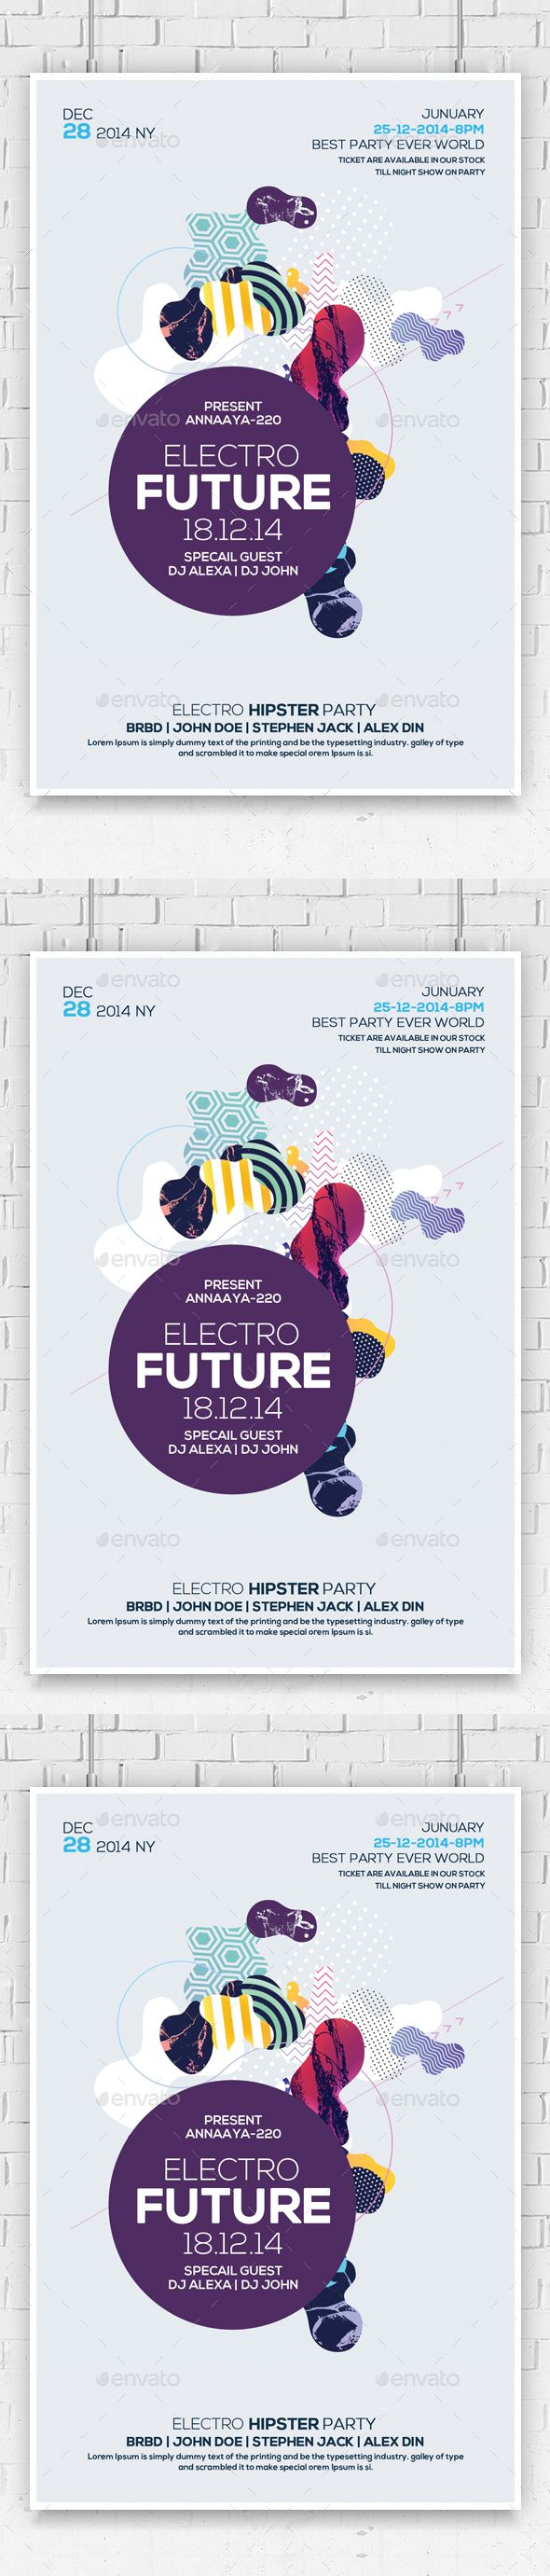 Electro Future Flyer Psd | Electro music, Future and Flyer template